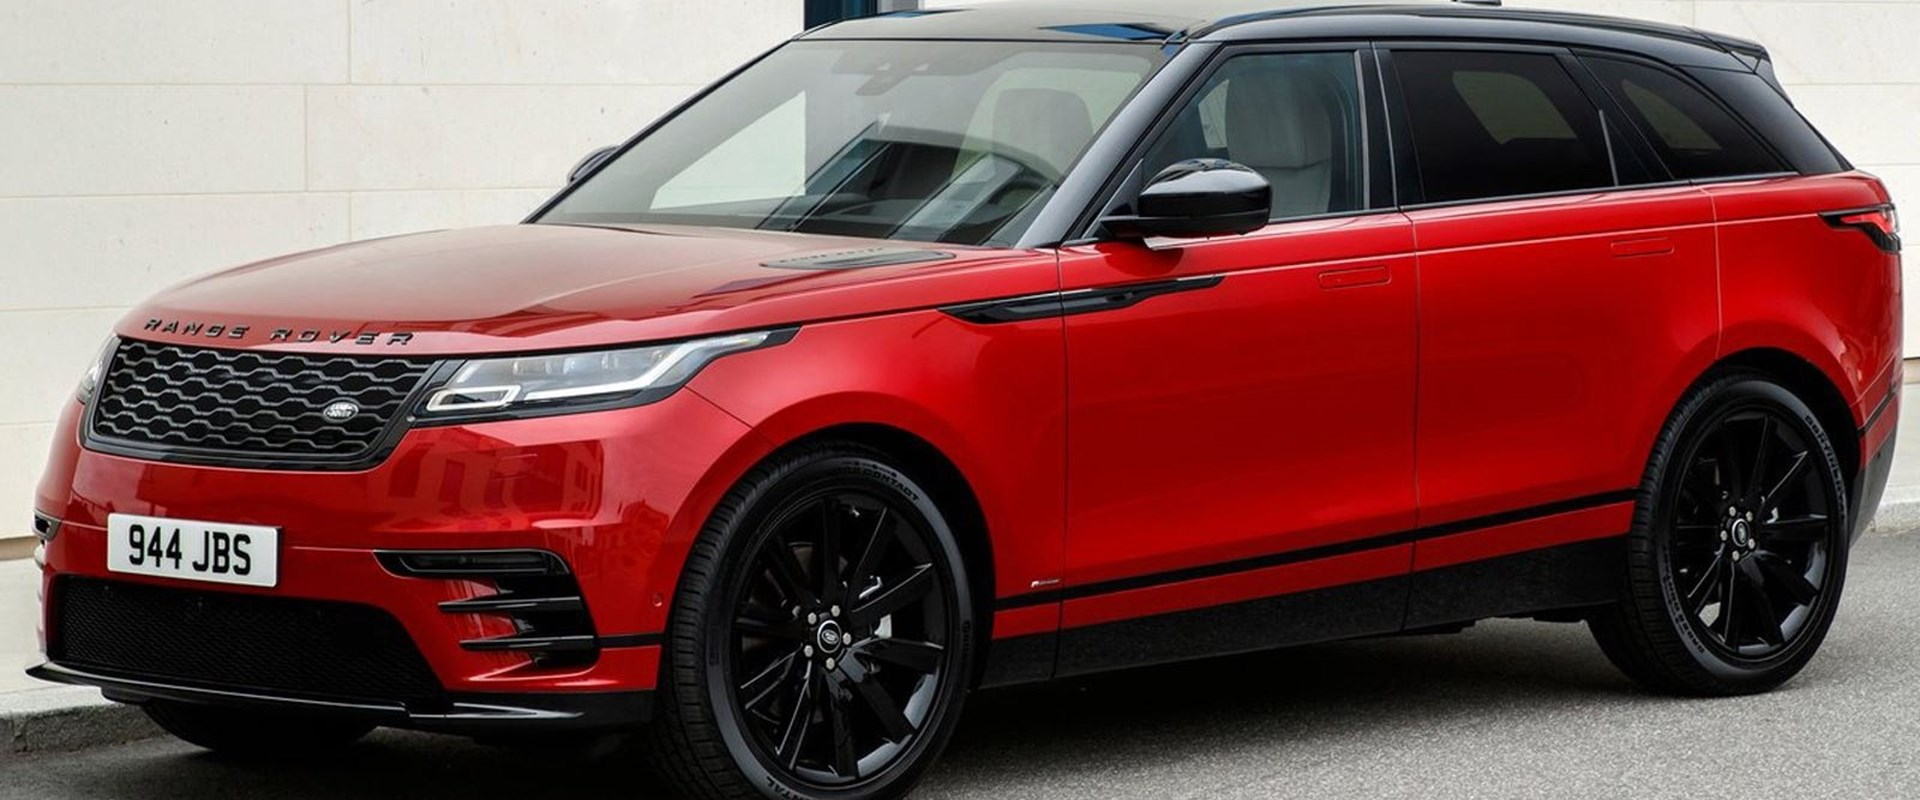 costs mpg land rover landrover cost facelift range parkers evoque rear review running of evoqe